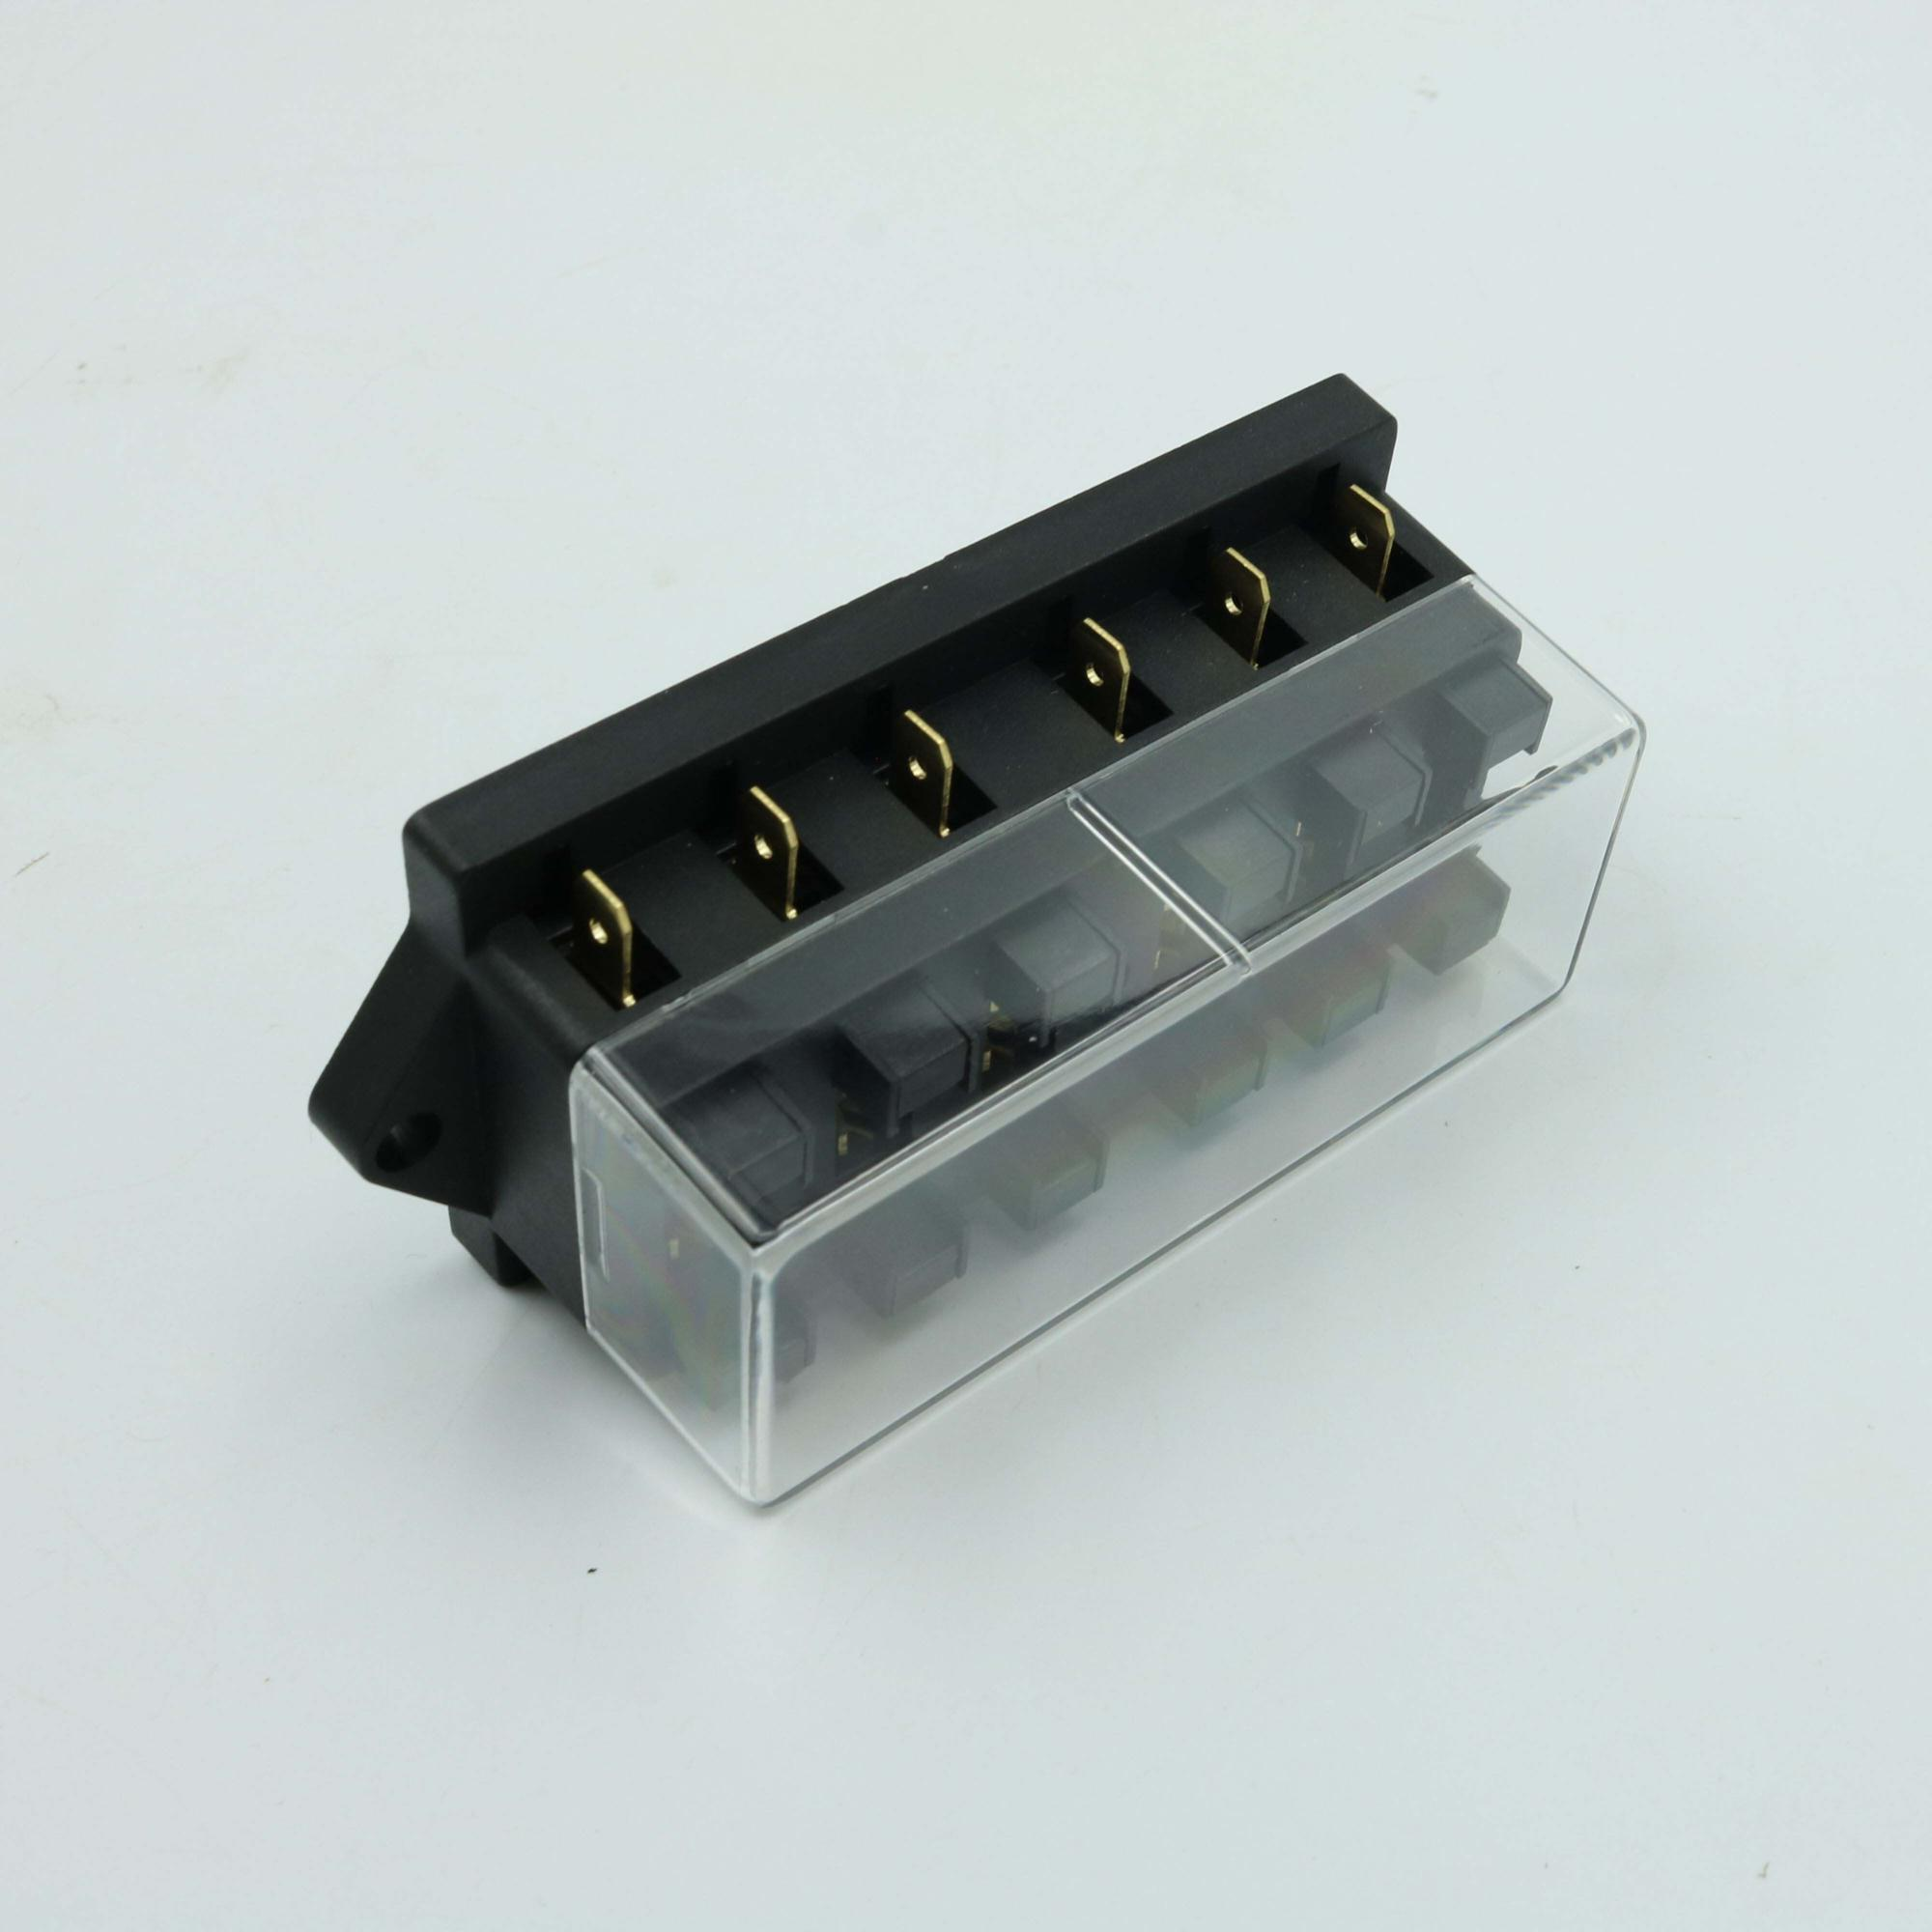 hight resolution of auto car bus dc 32v 6 way fuse box for middle size blade fuse atc